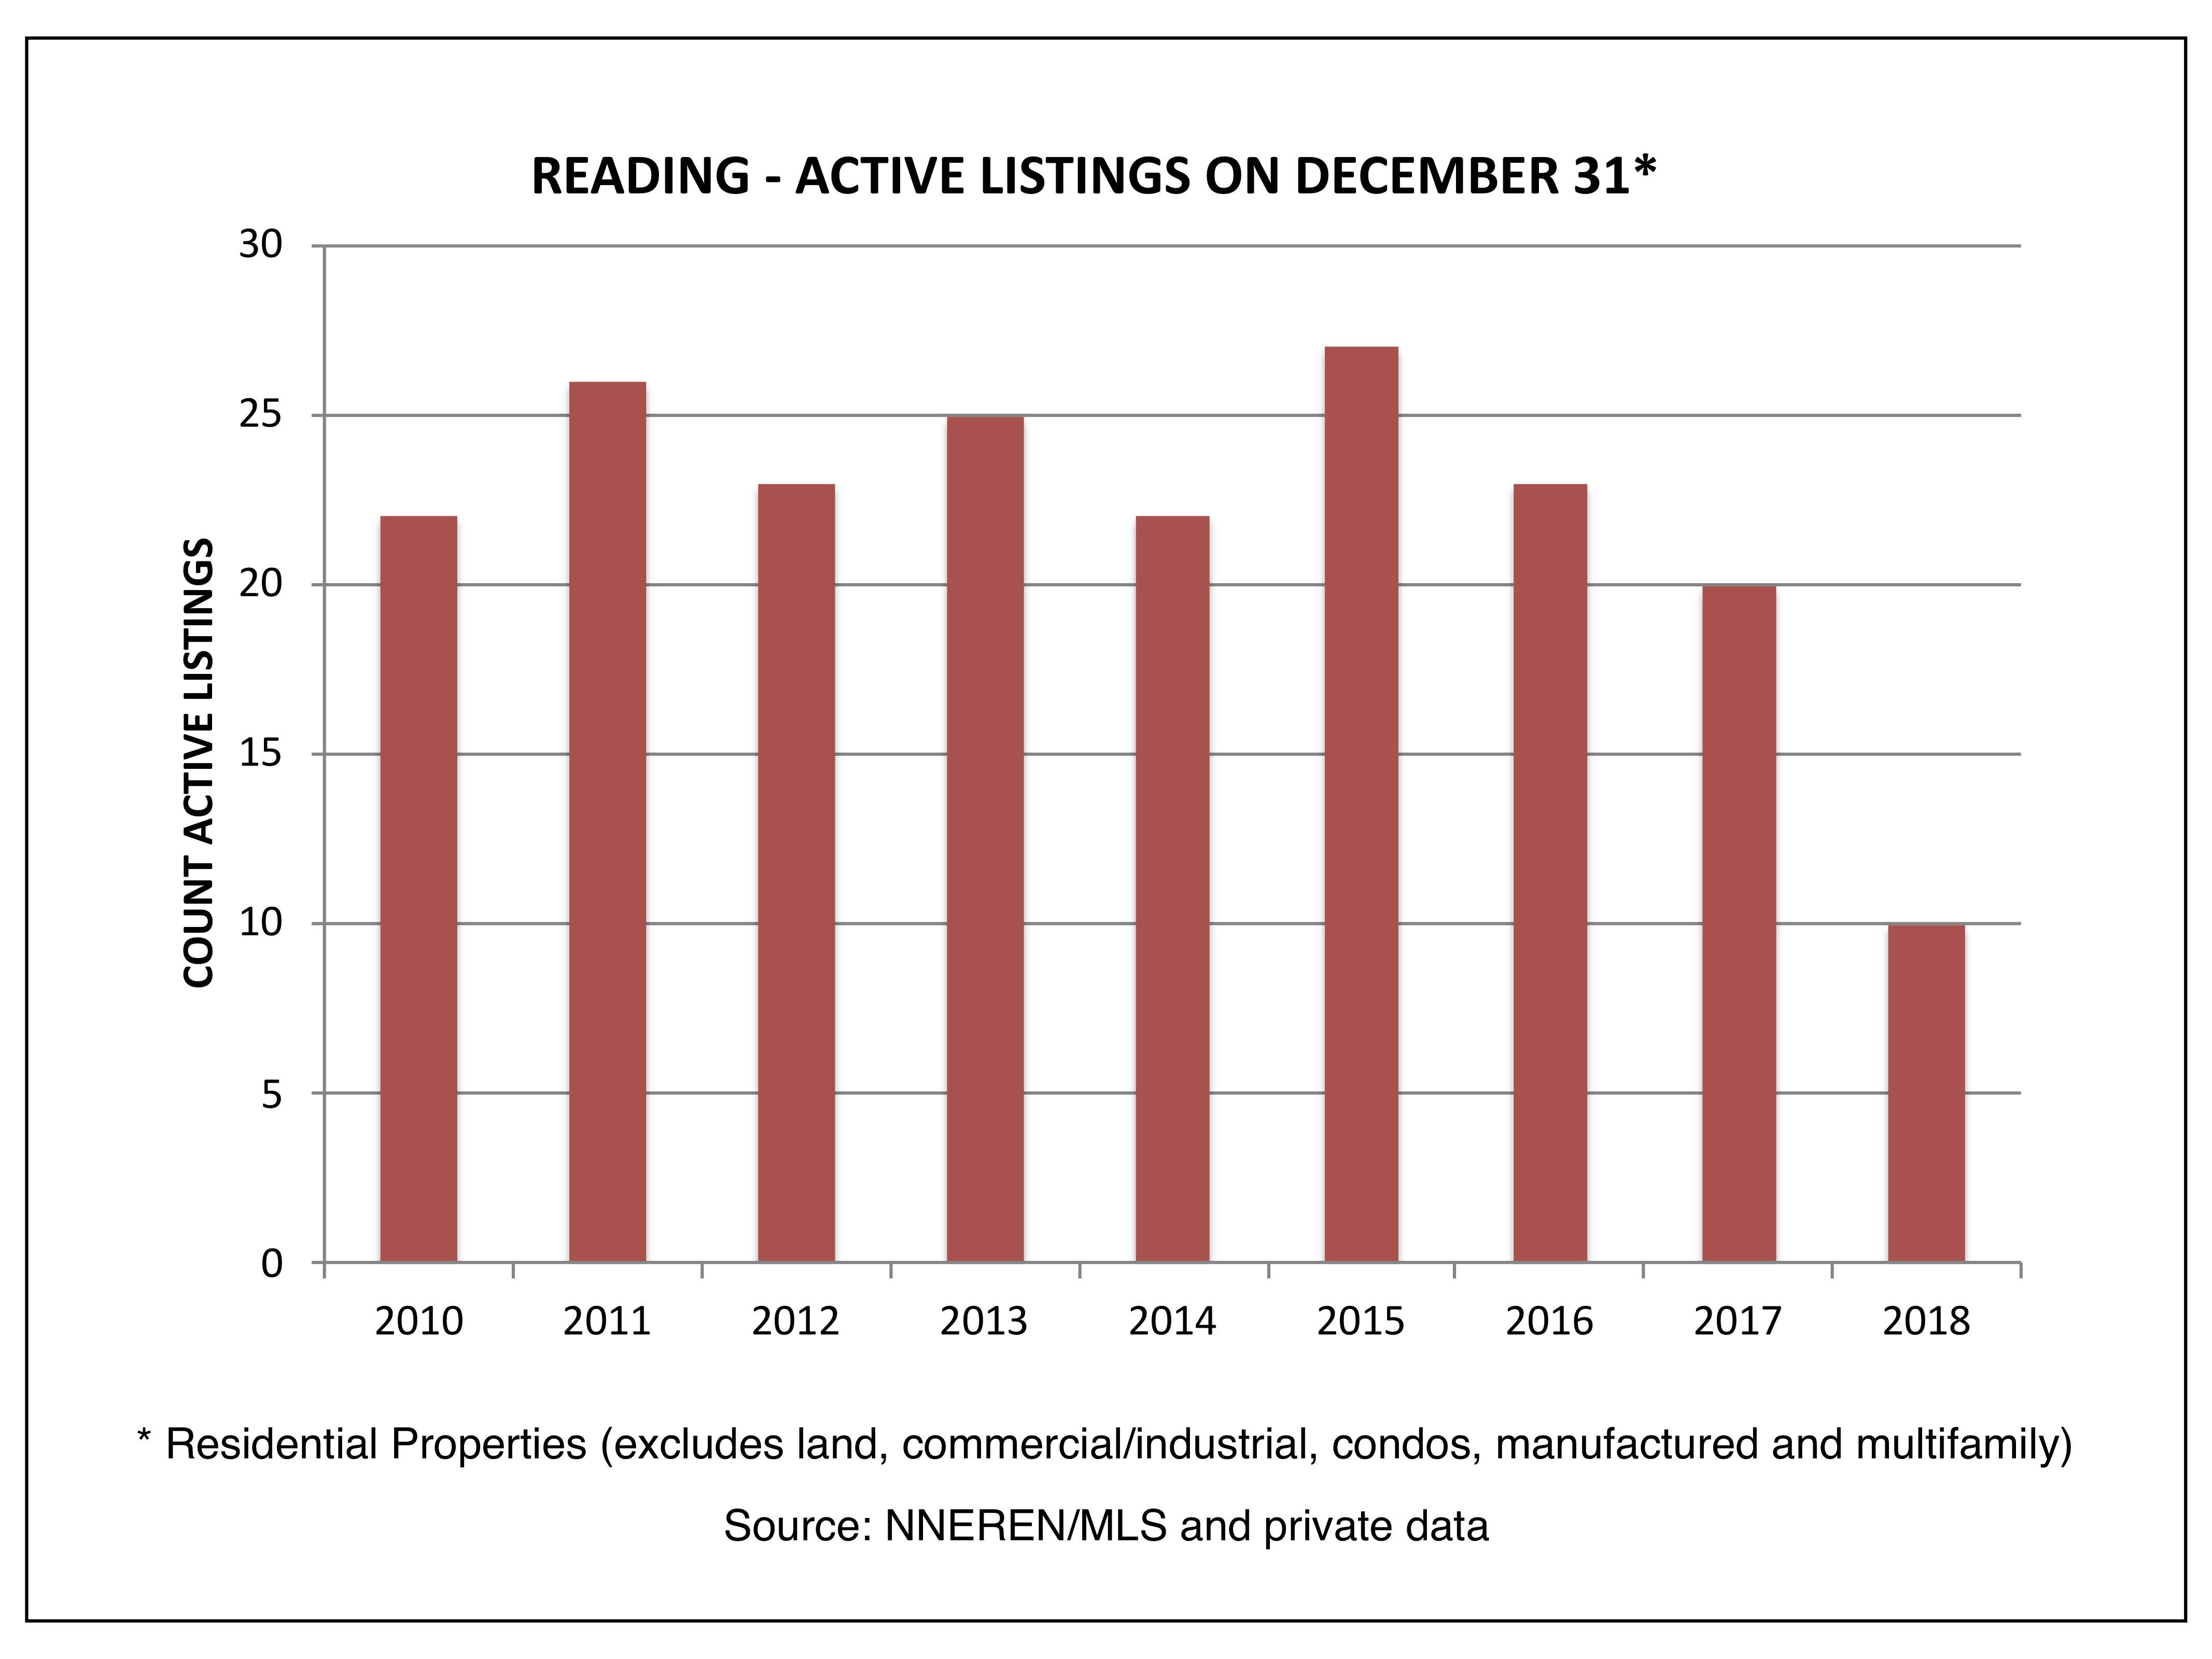 Reading - Actively Listed on December 31